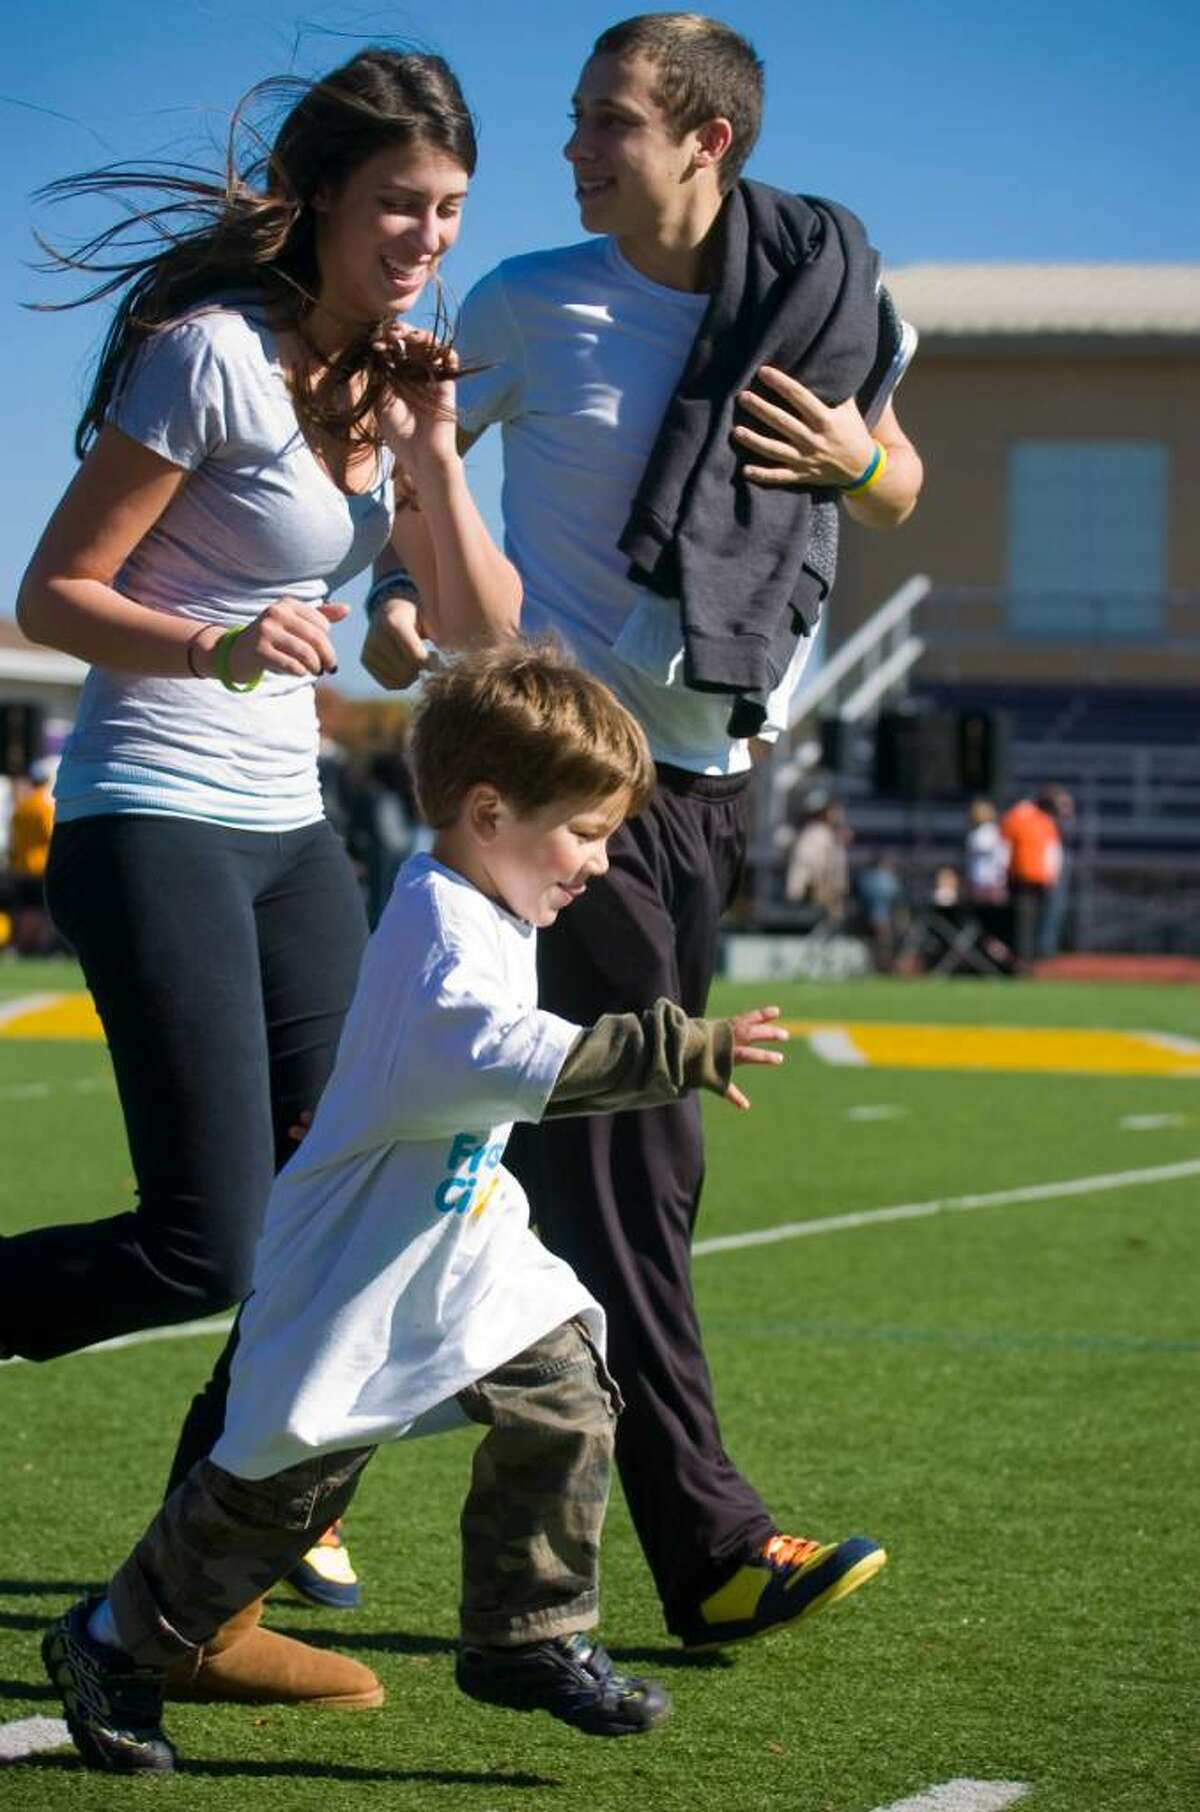 Arthur Burba, 3, runs with Caroline Chaplin, 16, and Matt Low, 17, during the Friendship Circle's Frienship Walk, which raised over $110,000 at Westhill High School in Stamford, Conn. on Sunday, Oct. 25, 2009.